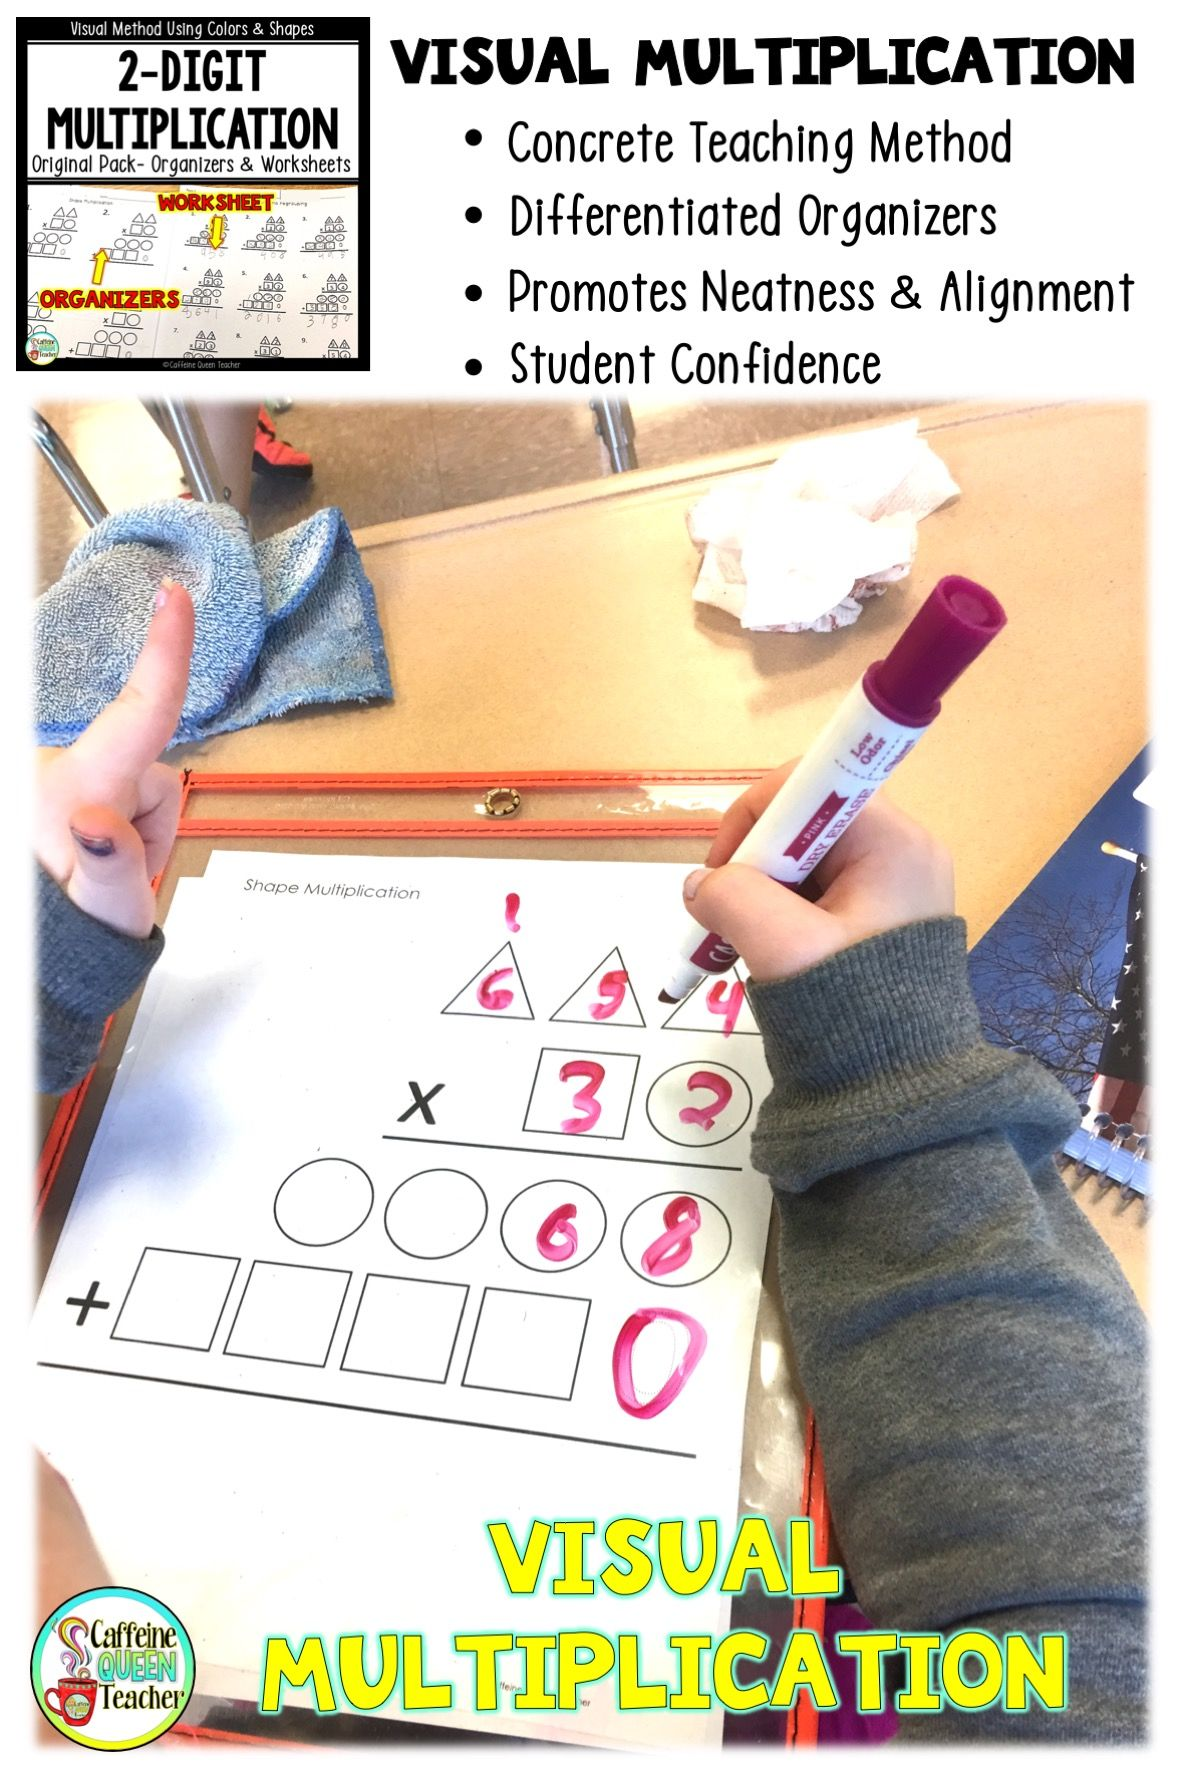 Concrete Way To Teach Multiplication With A New Strategy